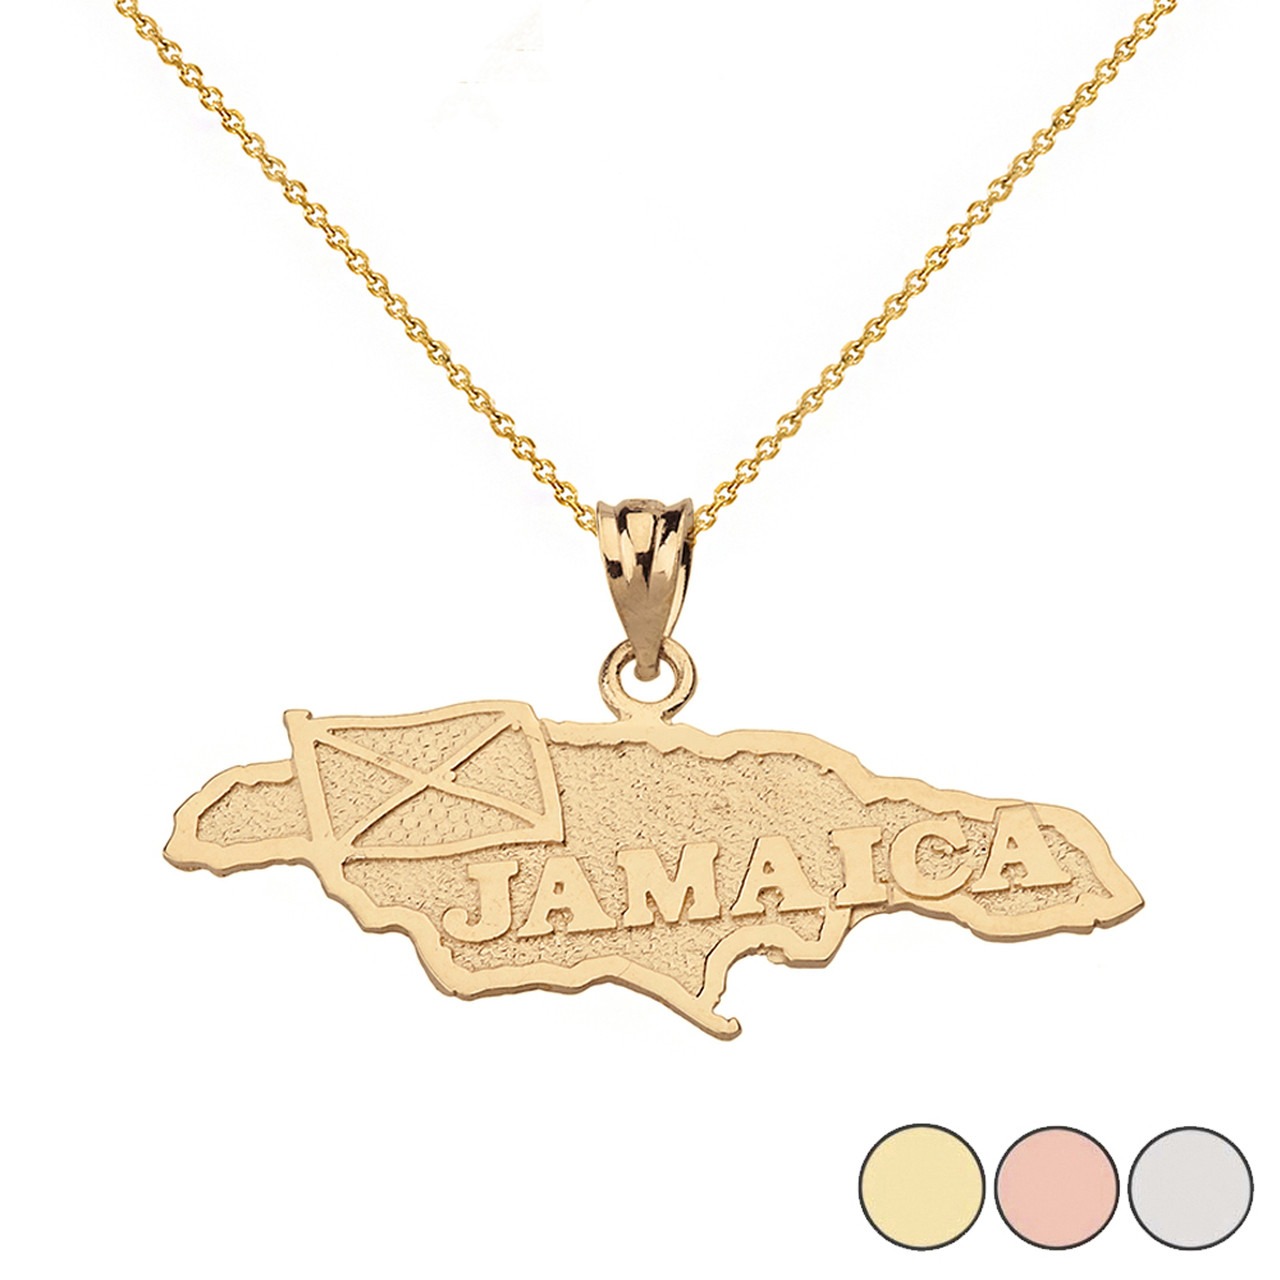 Jamaica Map Pendant Necklace in Solid Gold (Yellow/Rose/White) on map quotes, map ofitaly, map parts, map accessories, map letters, map artwork, map cambodia travel, map flowers, map throw blanket, map snap, map example, map ofusa, map ofcalifornia, map watches, map tilesets, map pendant jewelry, map clock, map phone case, map with hawaii,